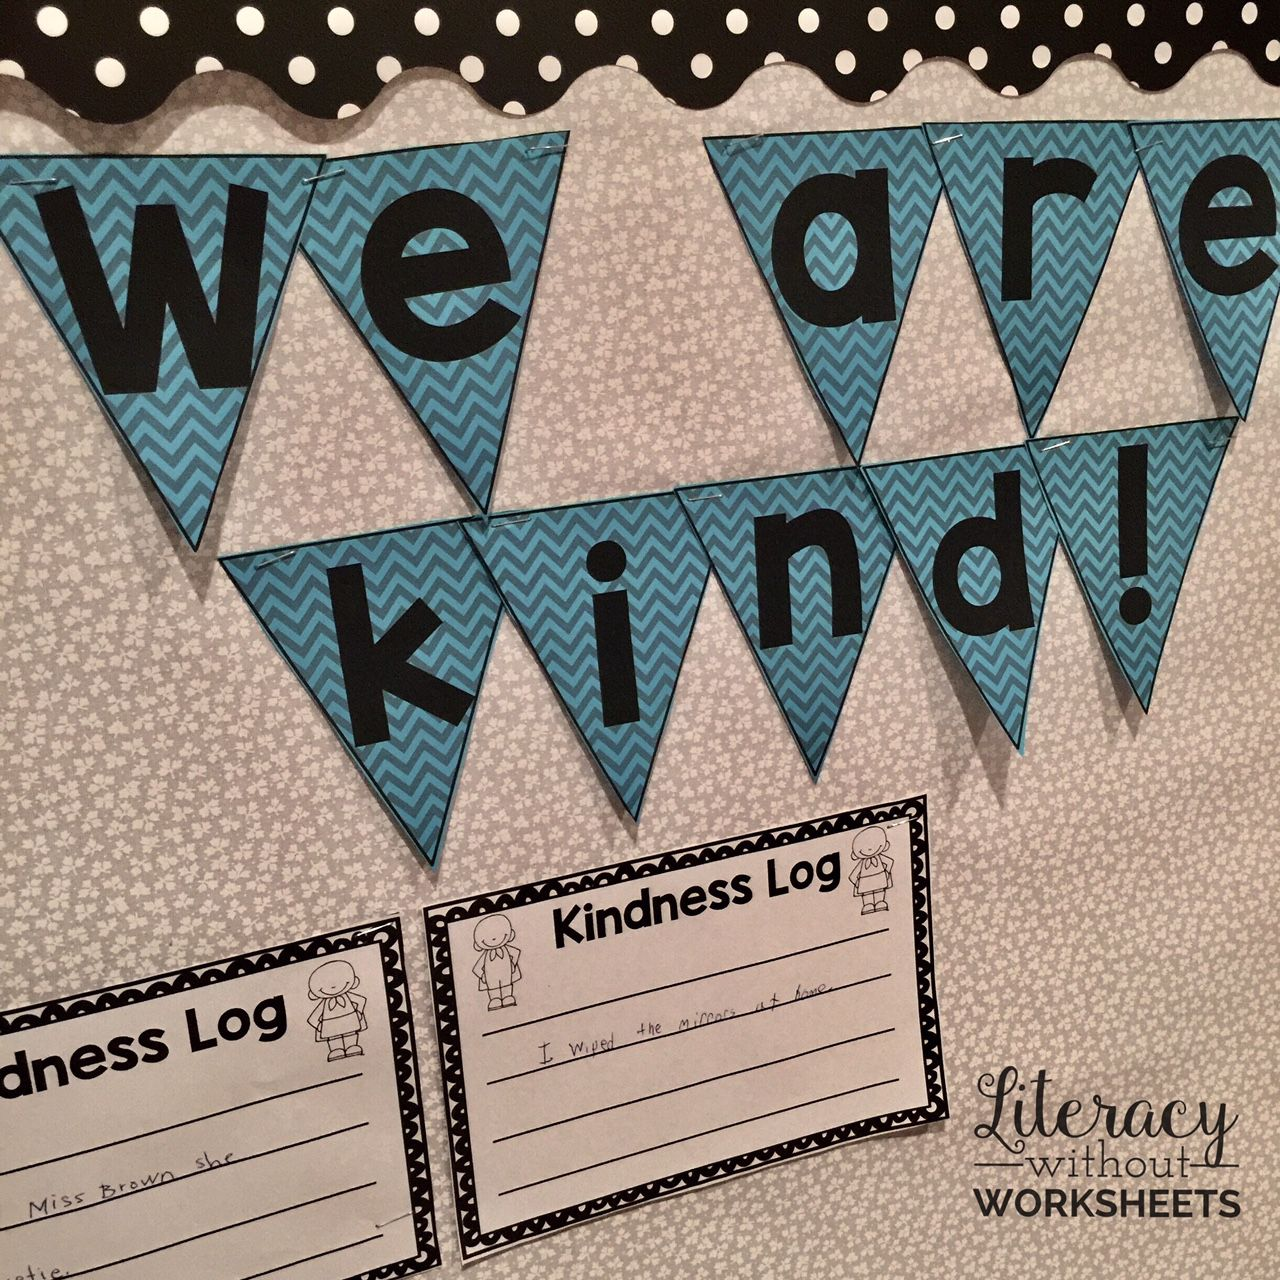 Kindness Kit Teaching Kindness In The Classroom